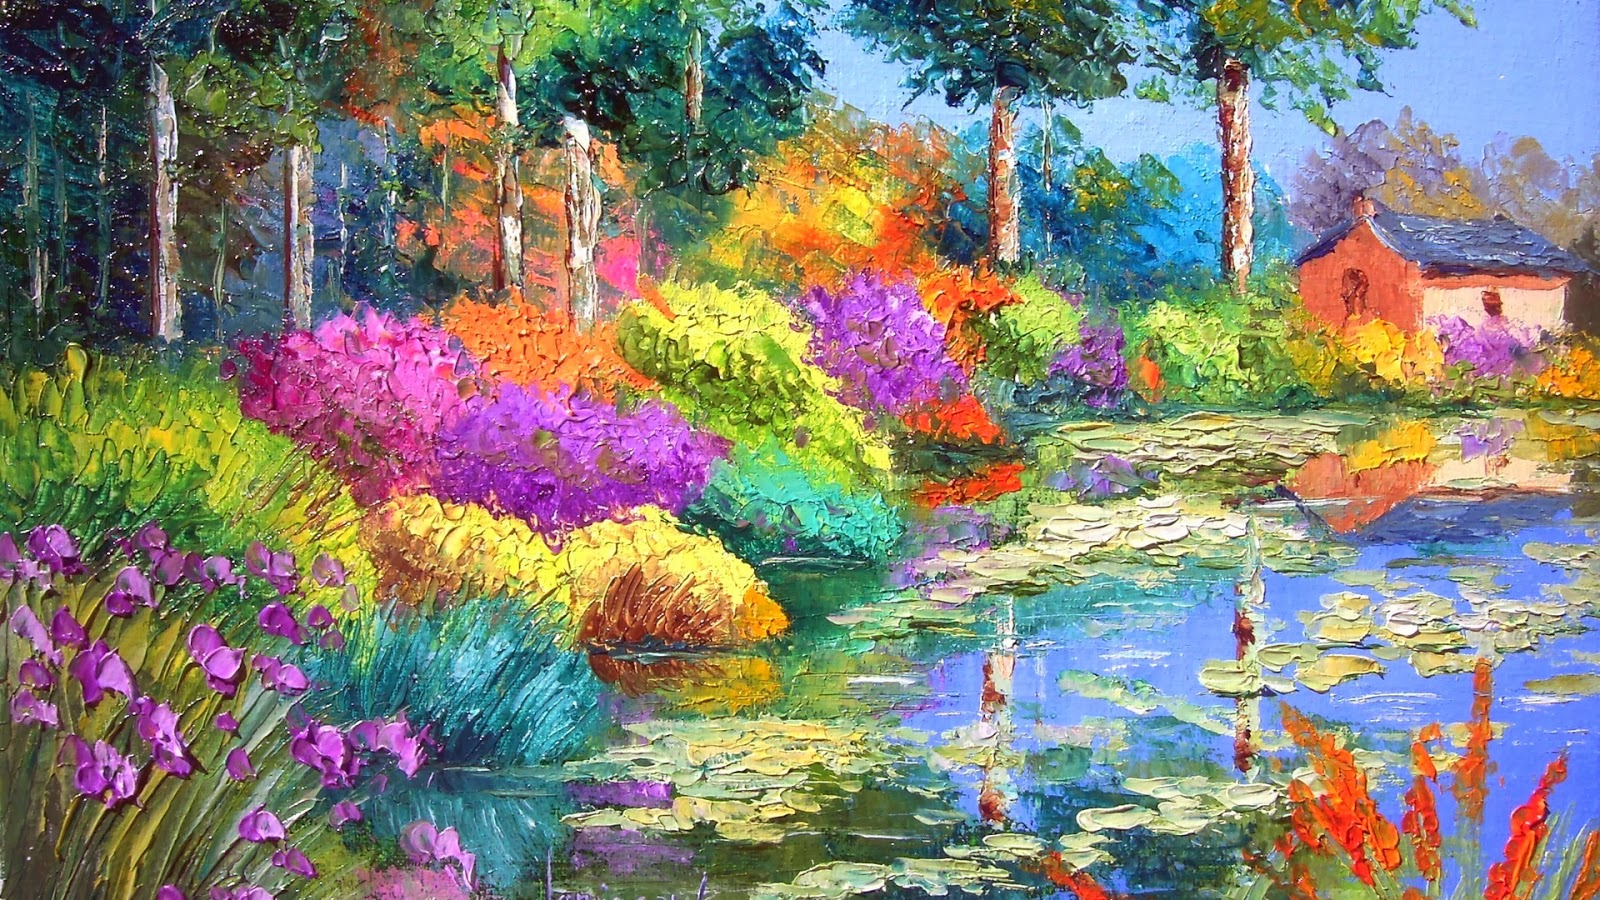 nature-pong-with-beautiful-flowers-park-oil-painting-image.jpg